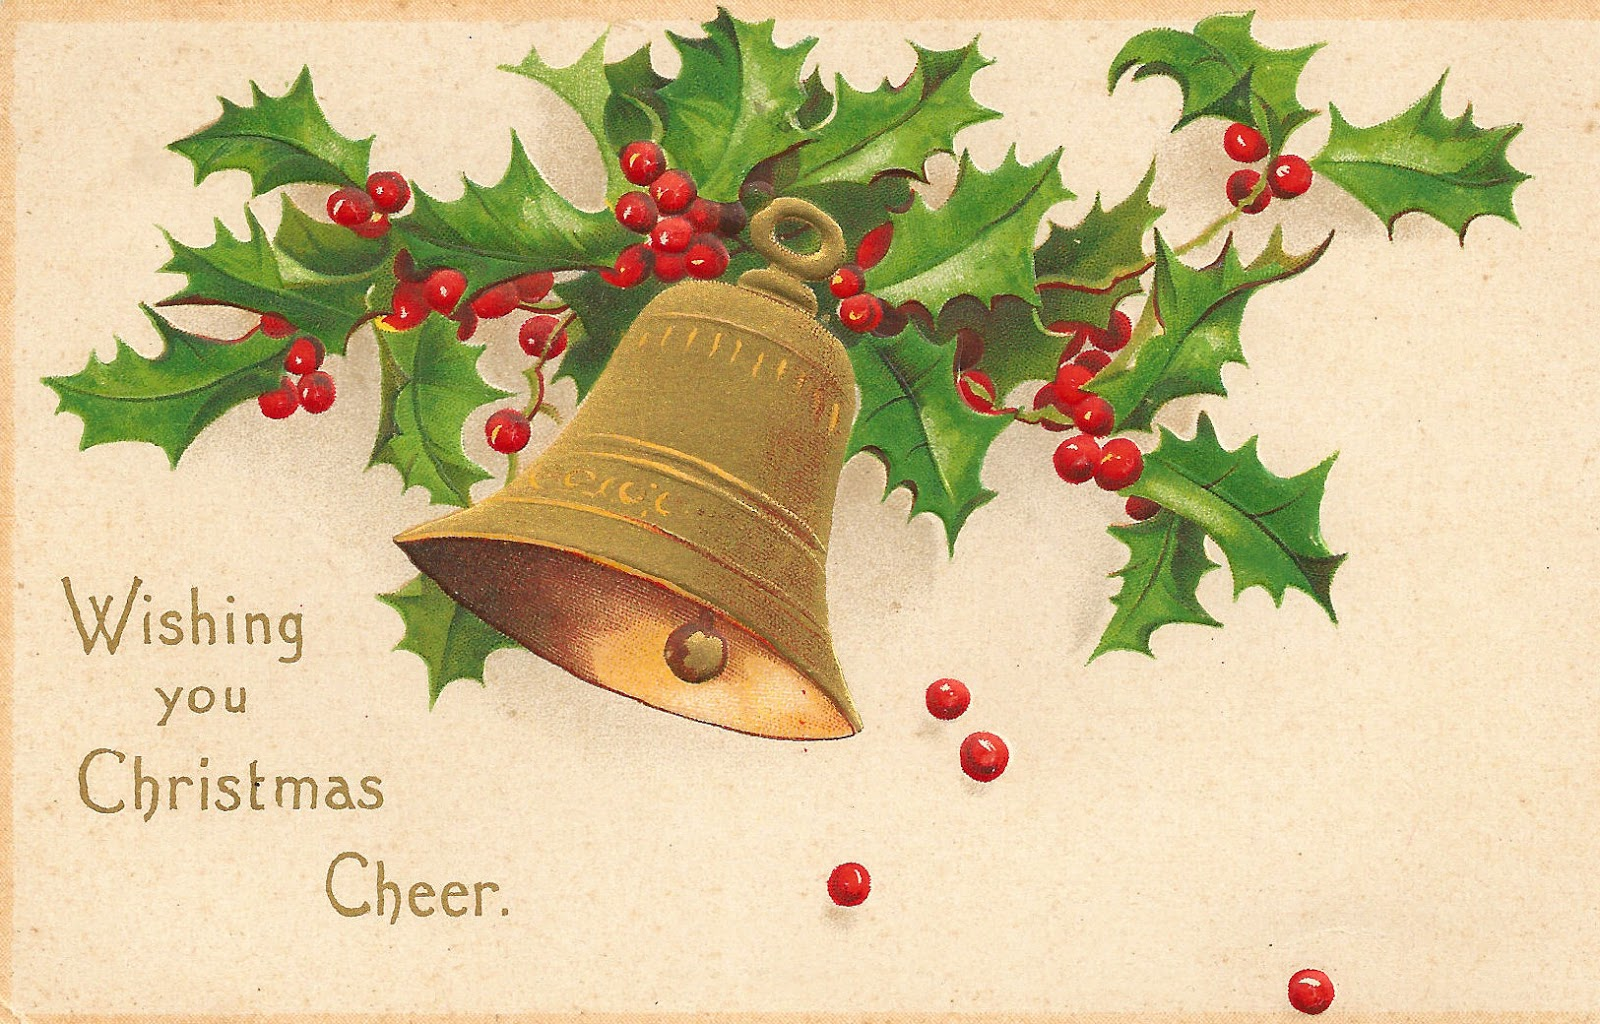 Free Vintage Christmas Pictures and Cards : Let's Celebrate!